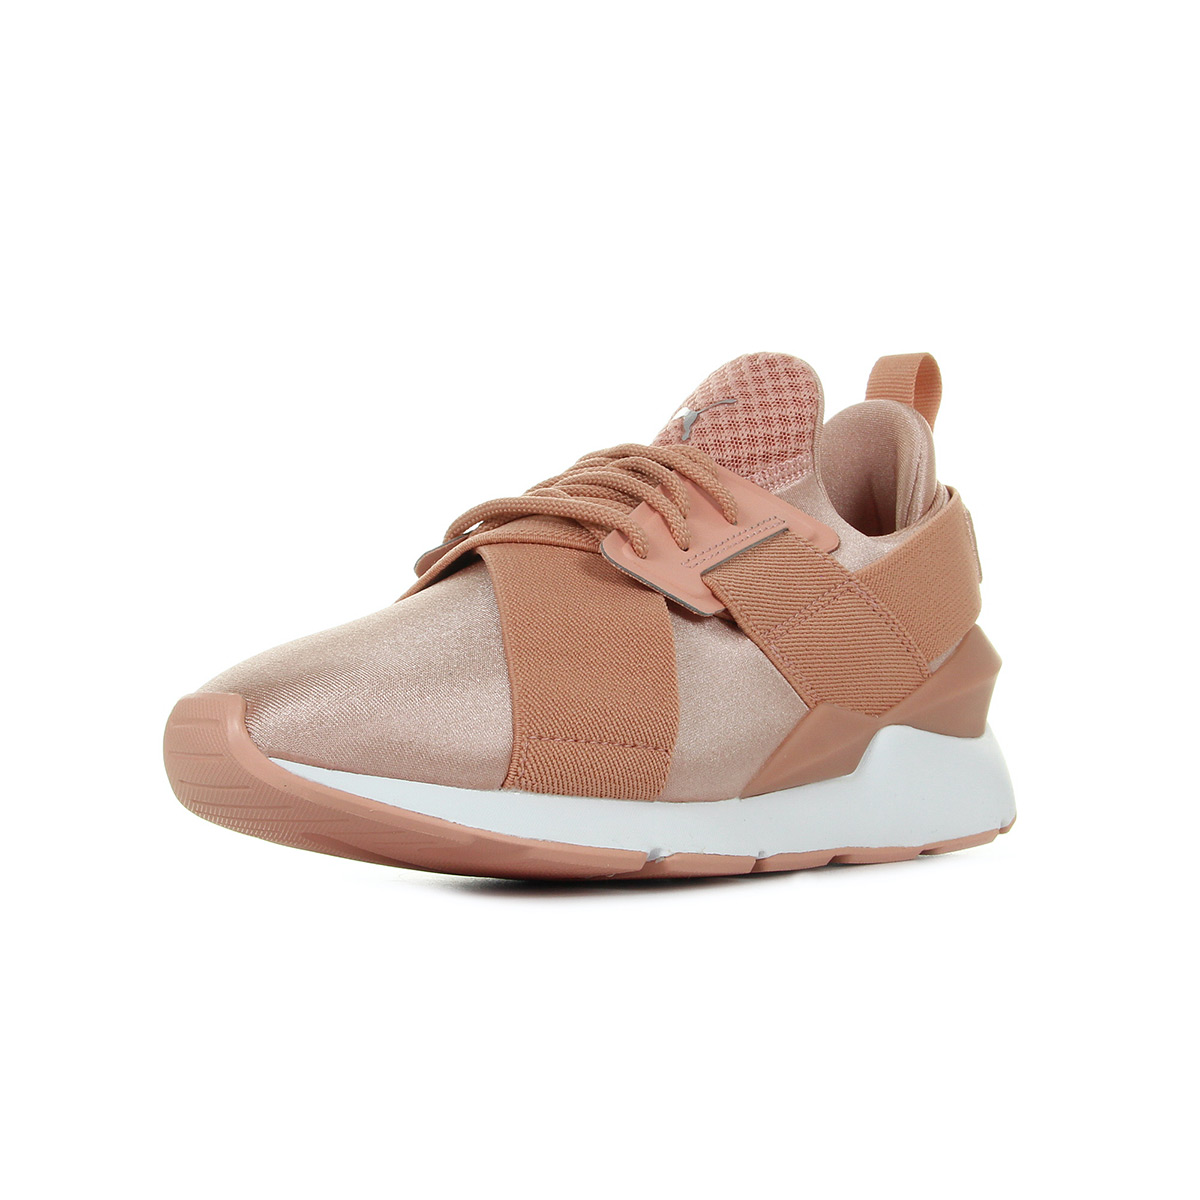 Chaussures Baskets Puma femme Muse X Strp Satin EP W's taille Rose Textile